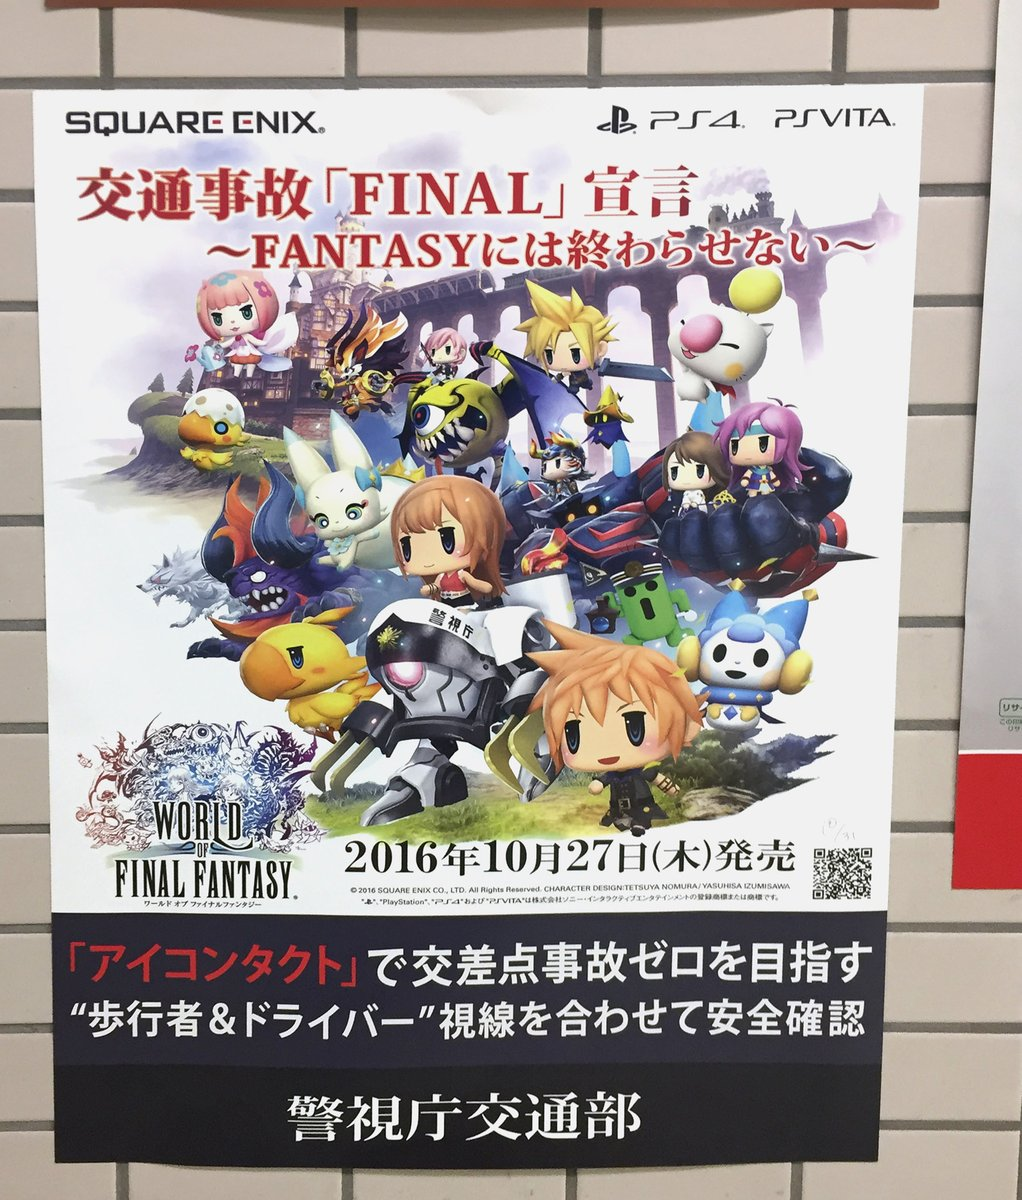 Tokyo Police and Final Fantasy team up to help prevent traffic accidents